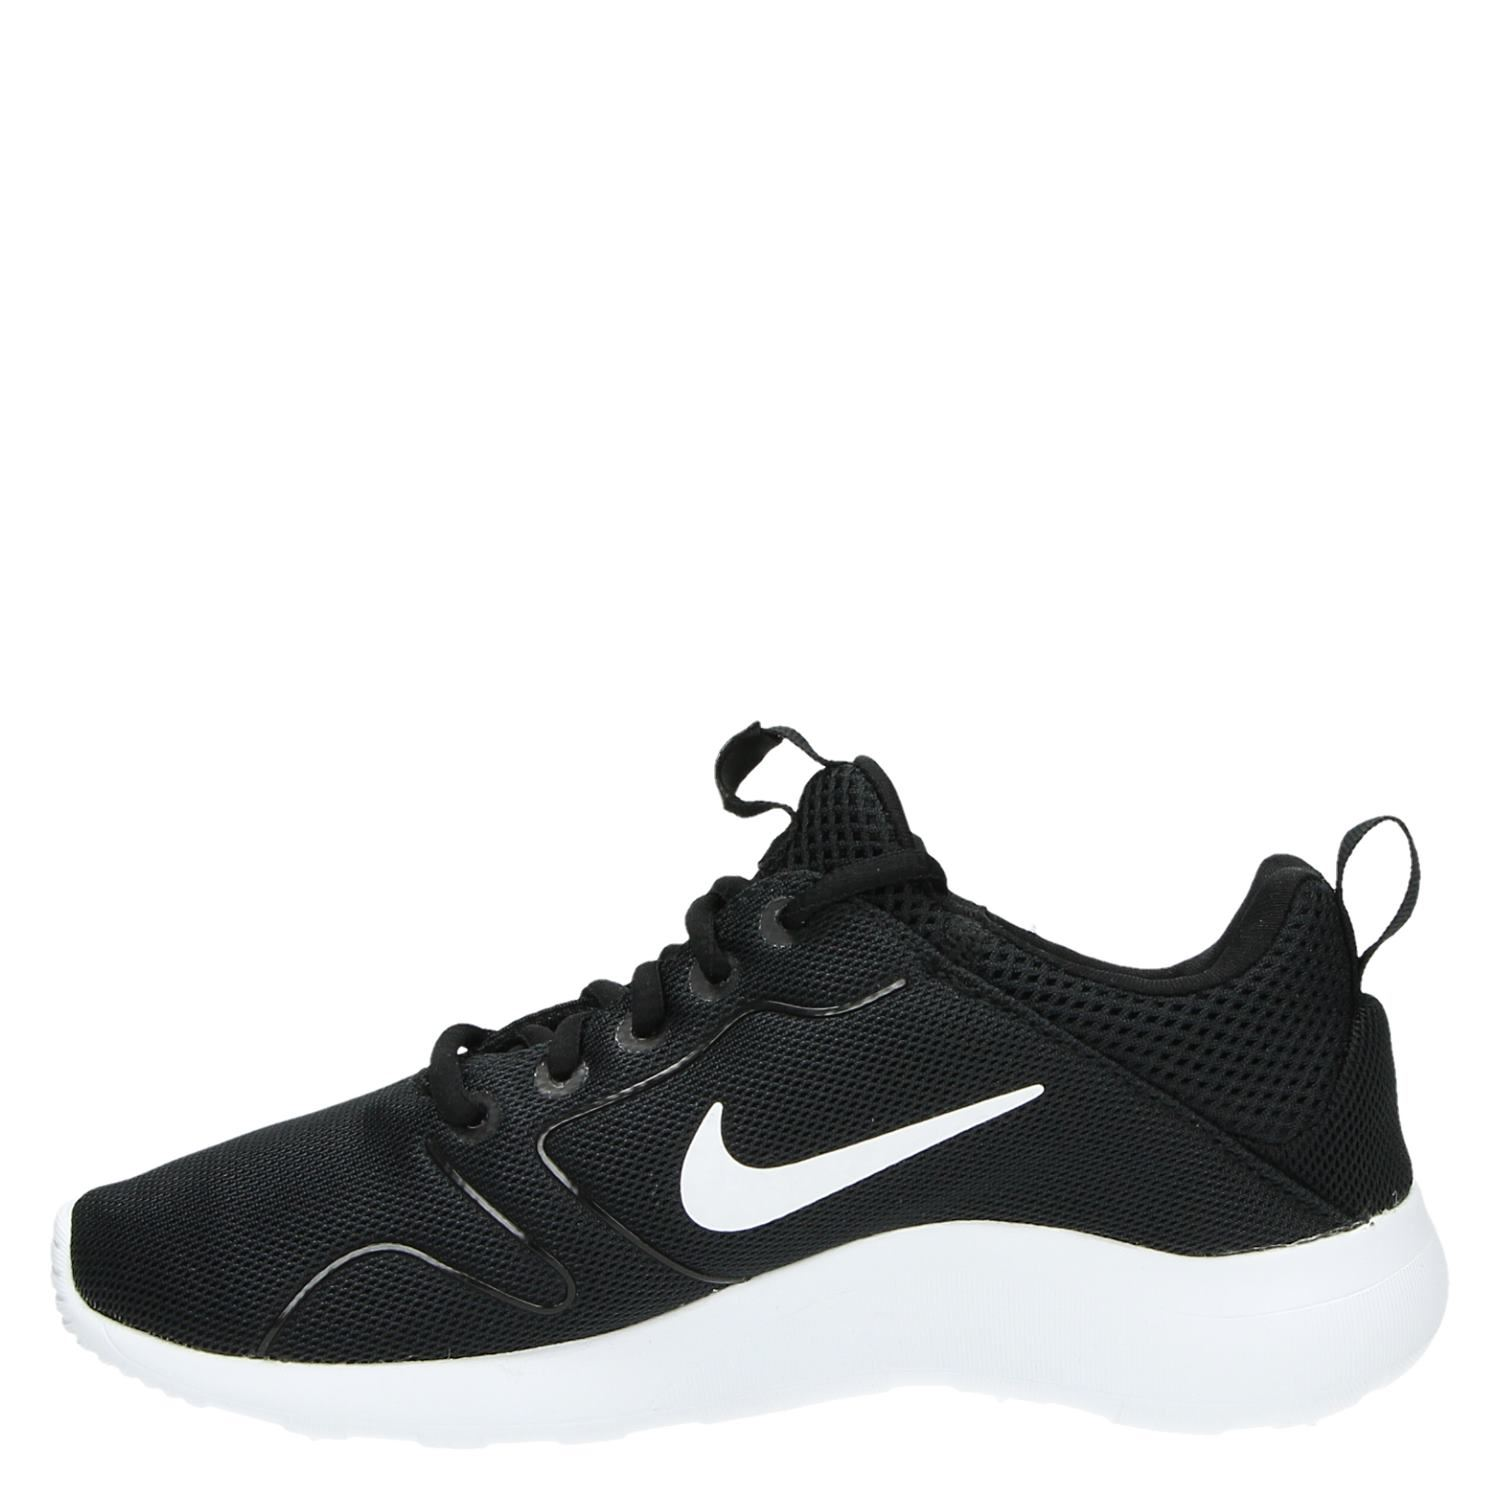 c67b1732469 ... uk nike kaishi dames lage sneakers b0586 6fb92 usa nike womens ...